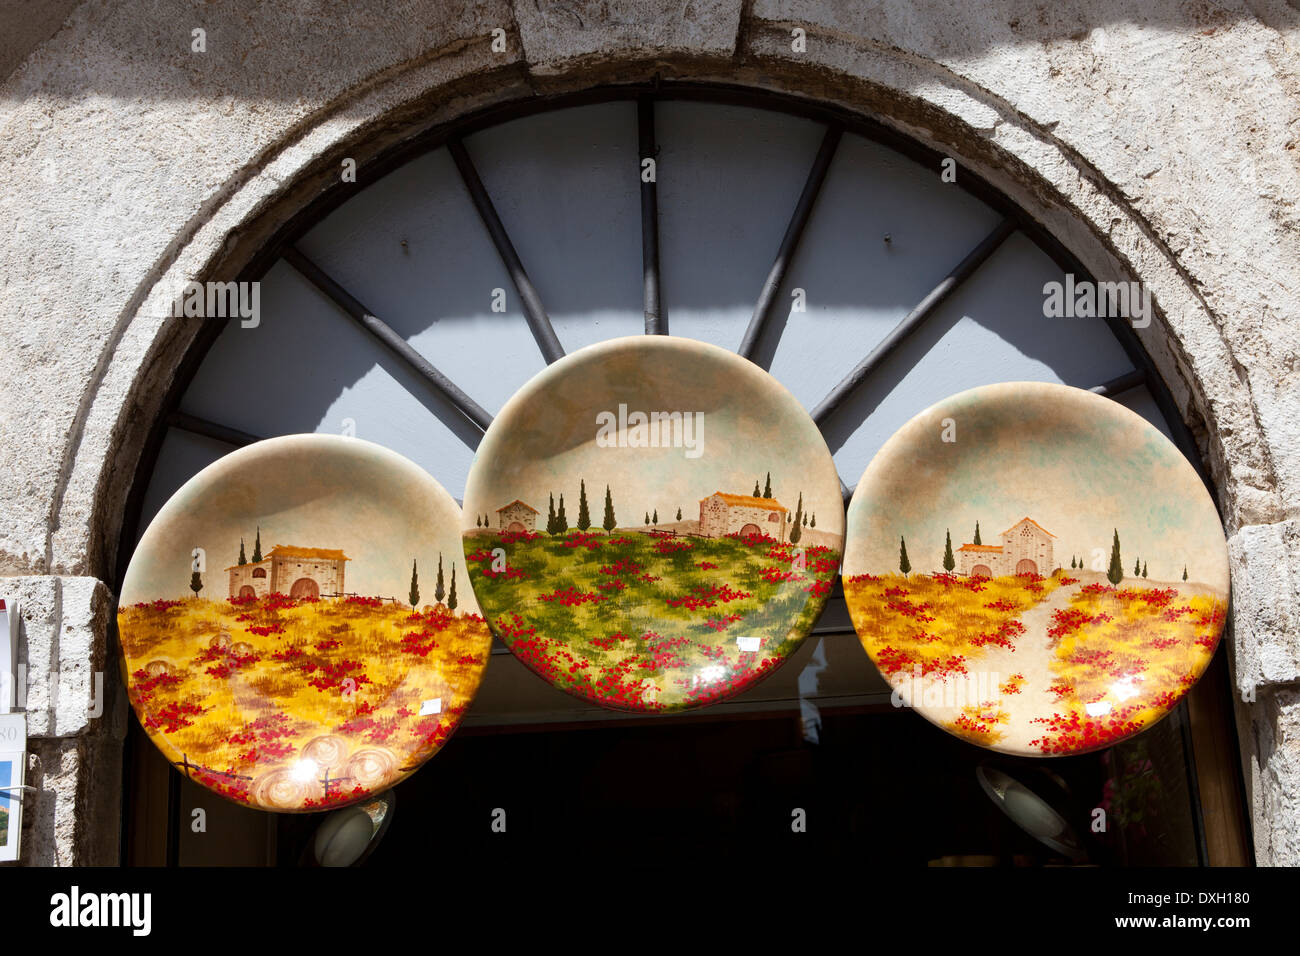 Ceramic Souvenirs Tuscany Italy High Resolution Stock Photography And Images Alamy